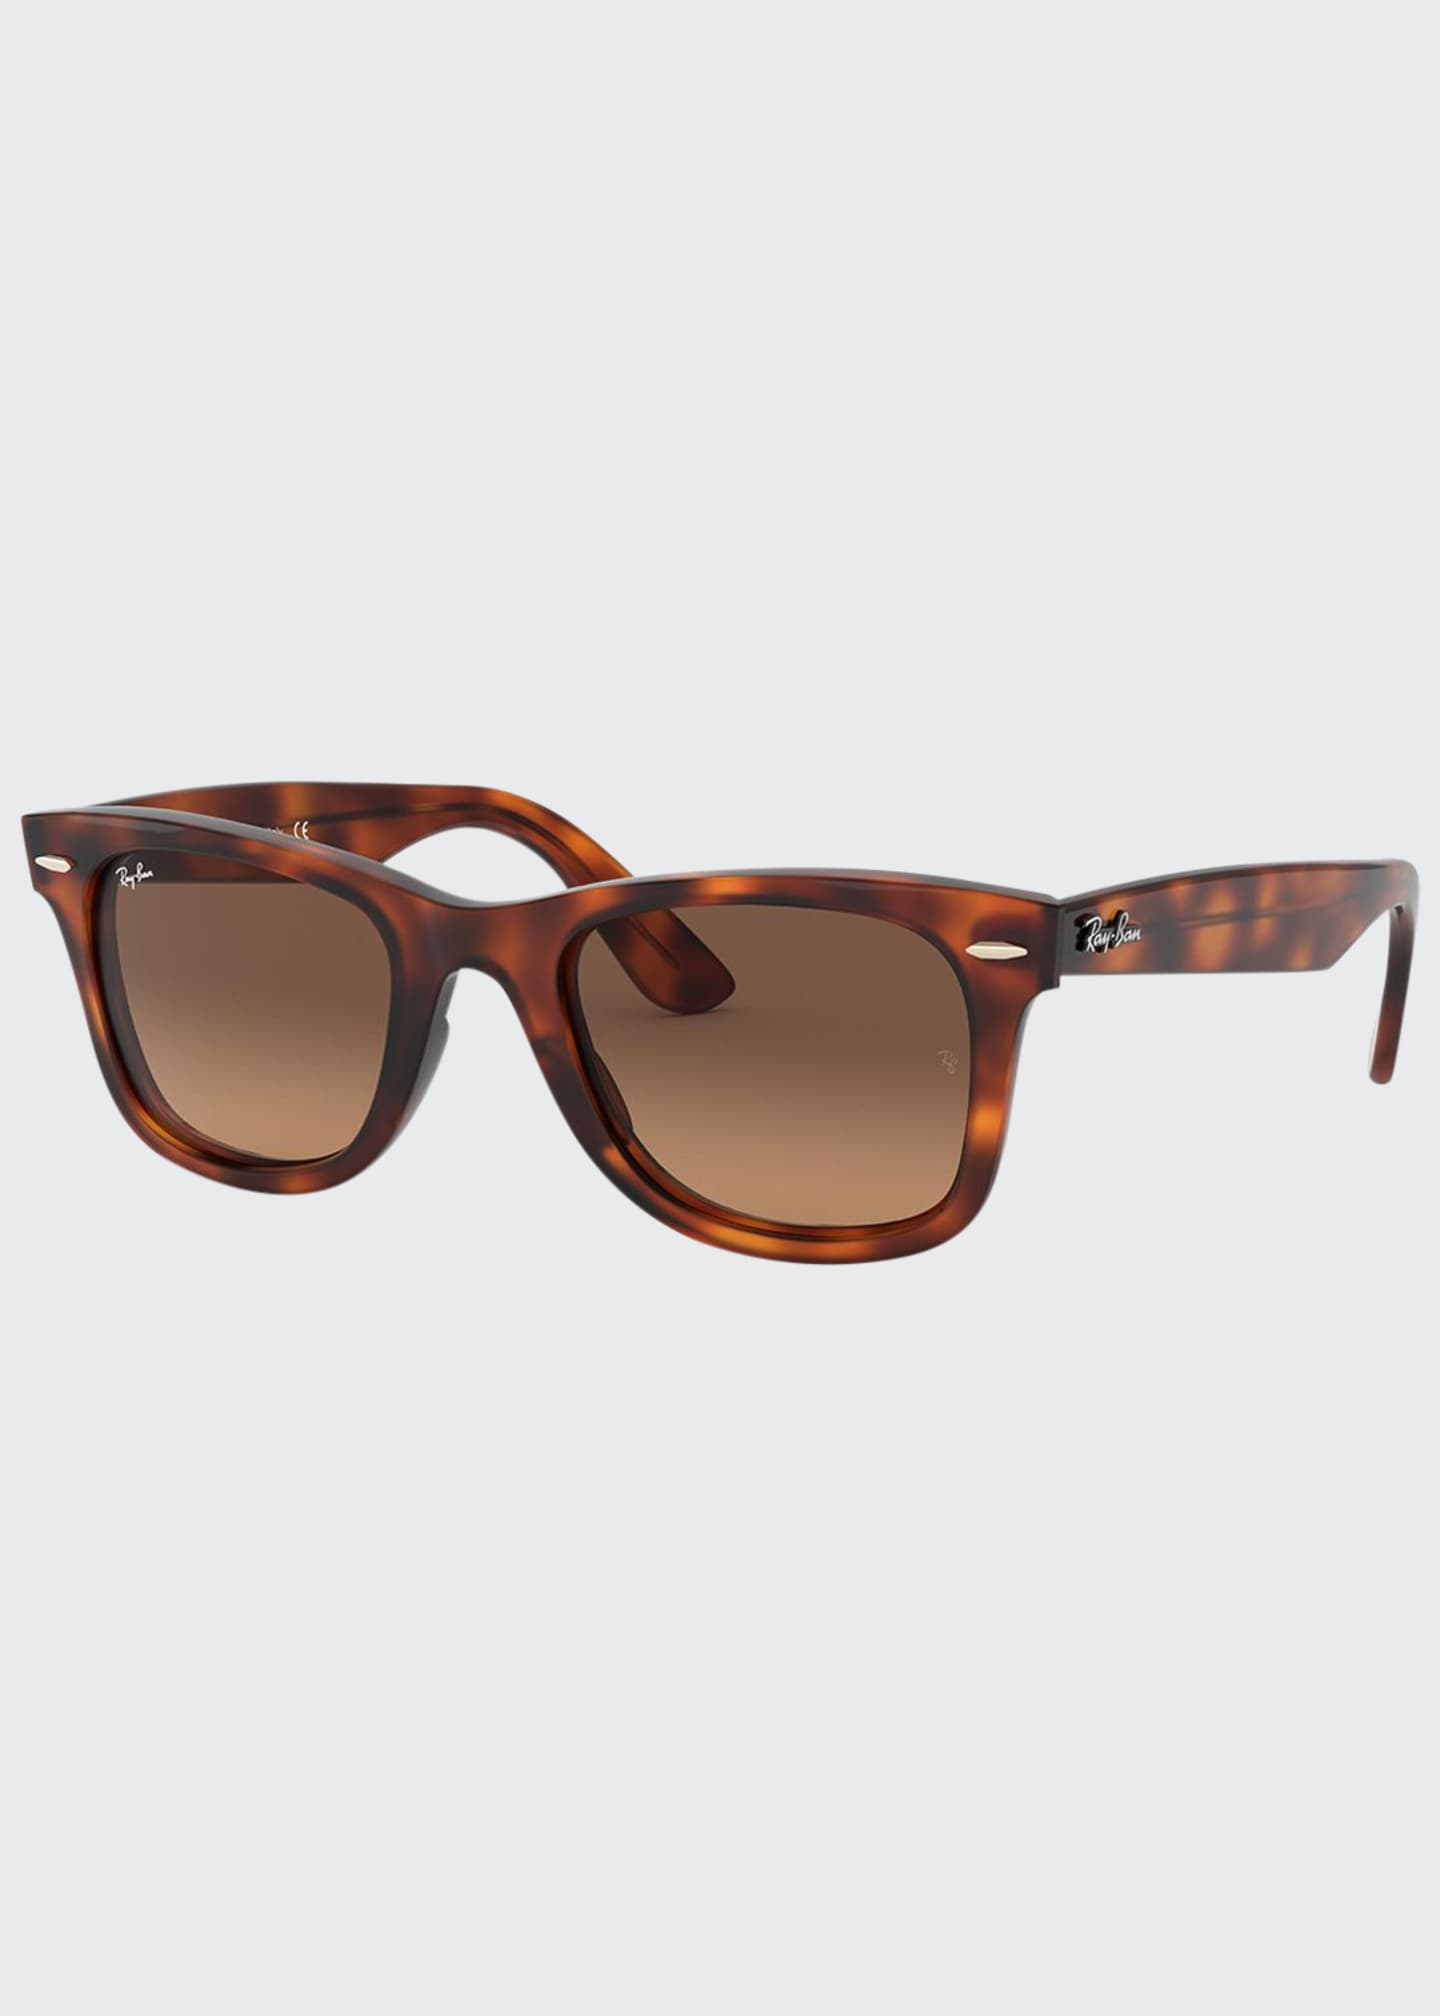 Image 1 of 2: Men's Wayfarer Ease Propionate Sunglasses